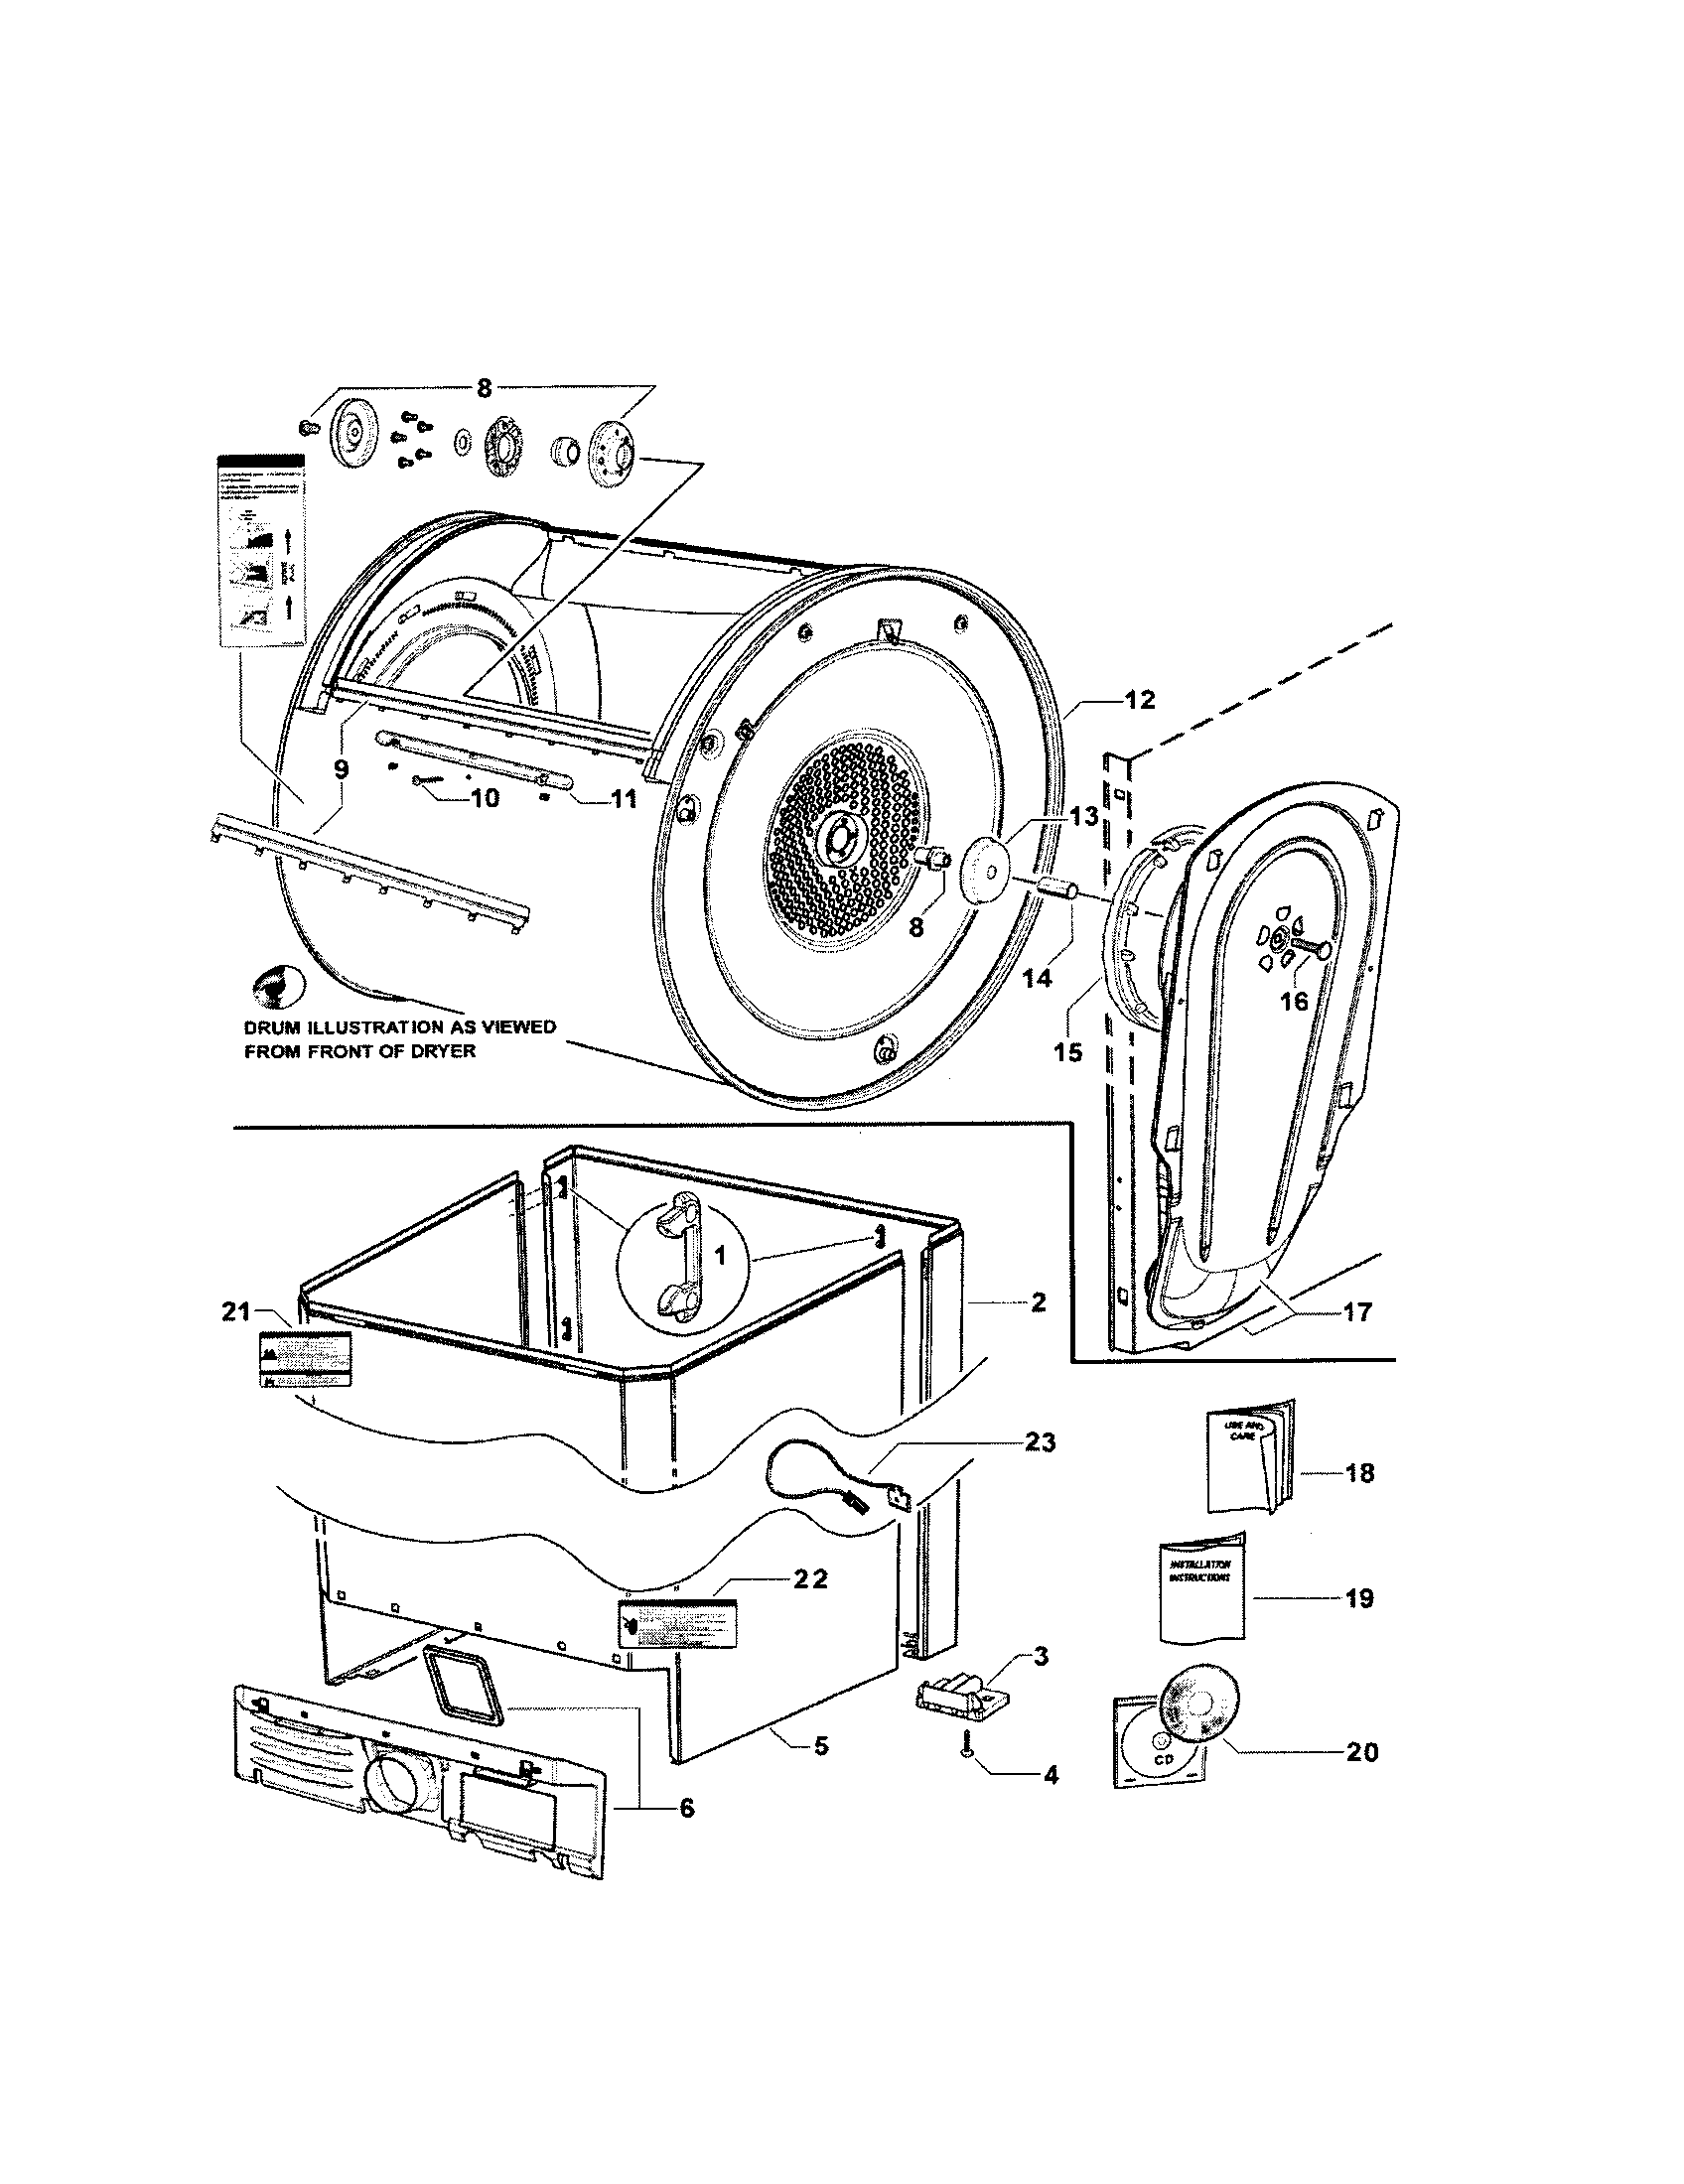 Wiring Diagram For Fisher Paykel Dryer